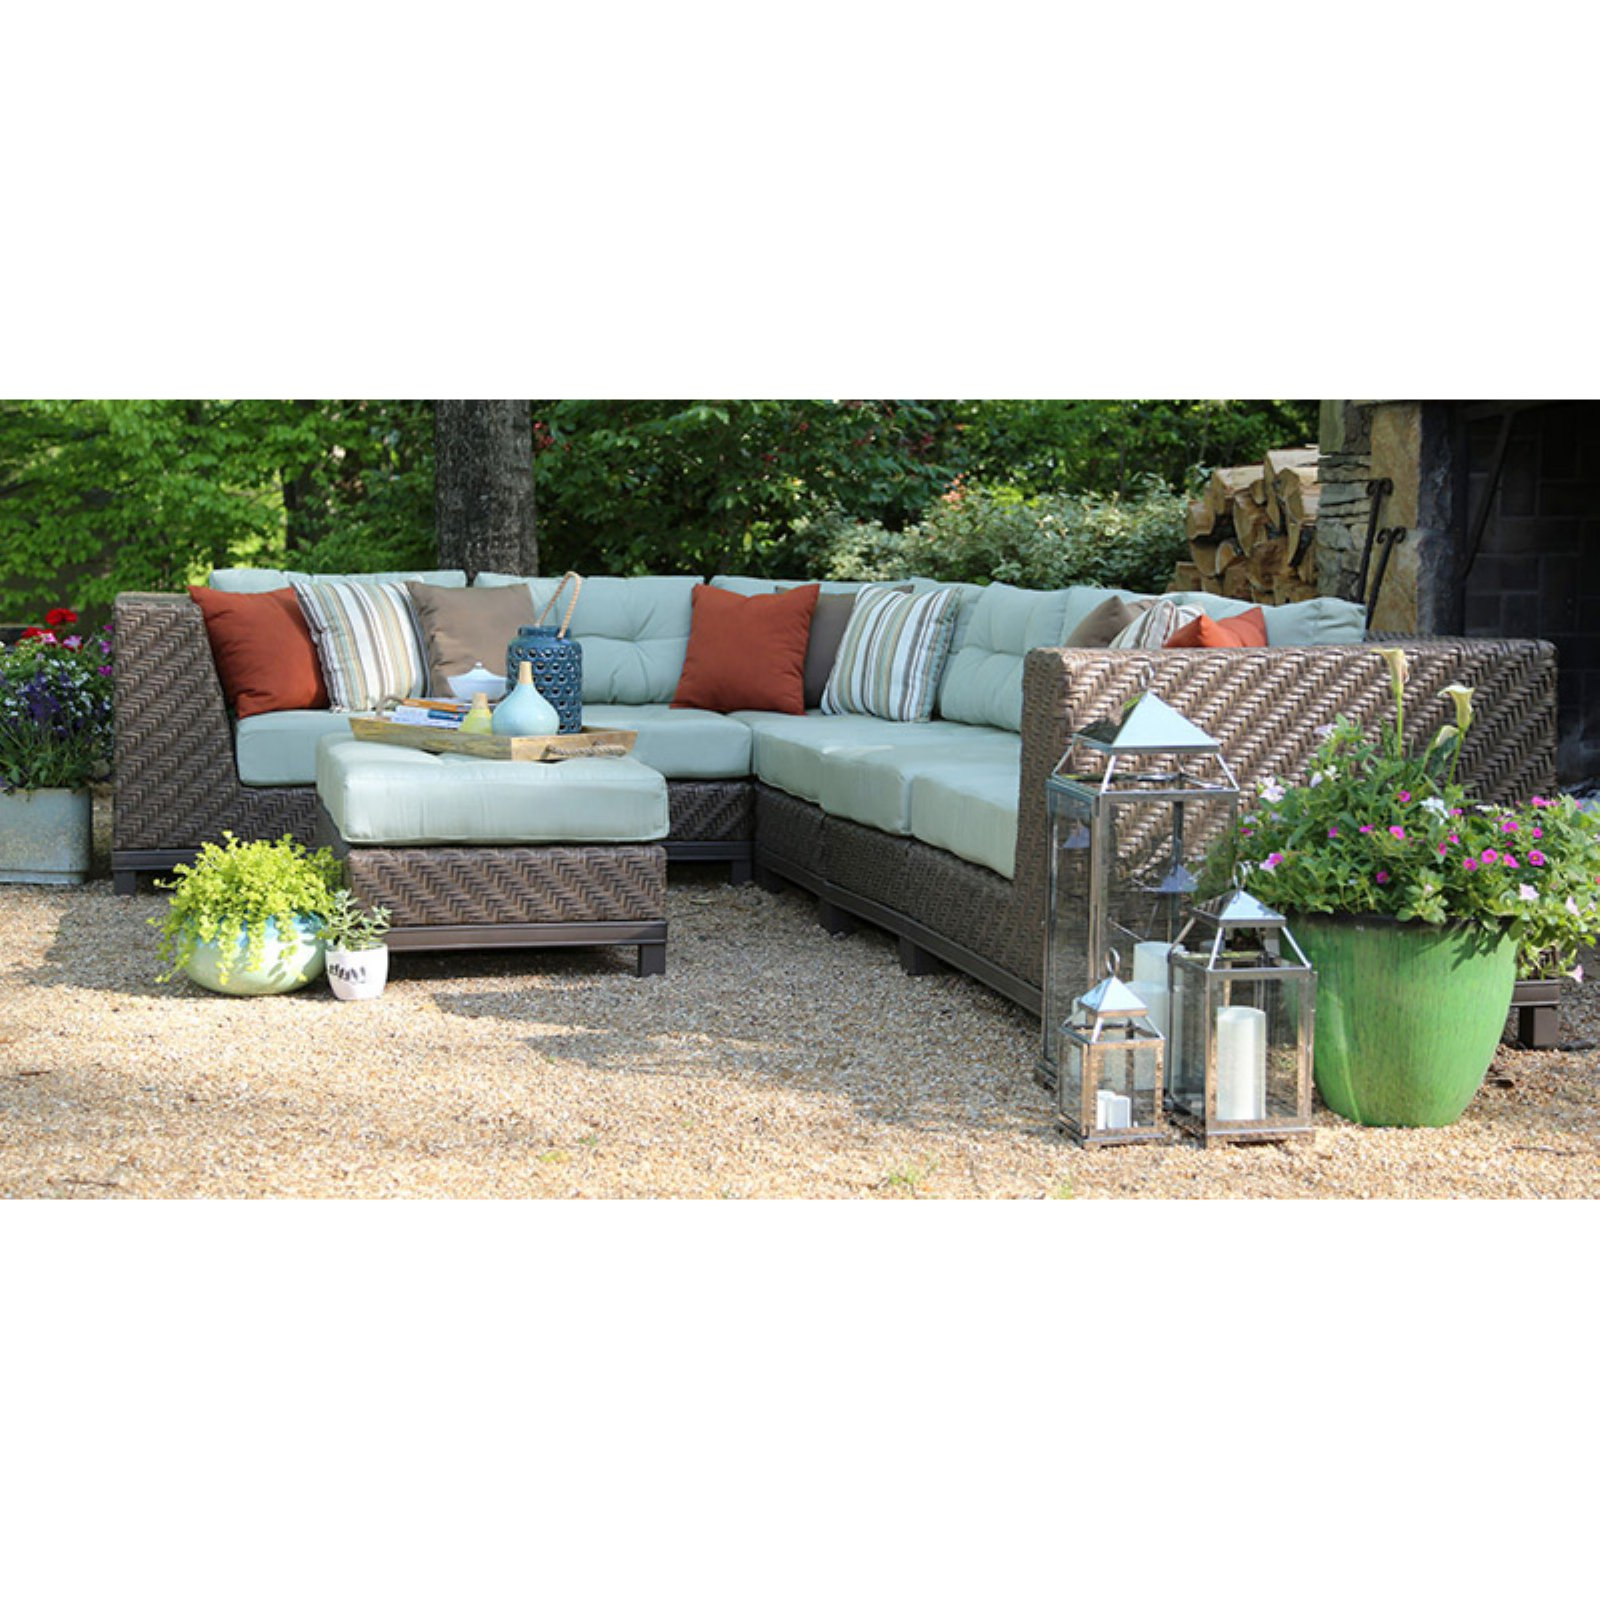 AE Outdoor Dawson 7 Piece Sectional Conversation Set